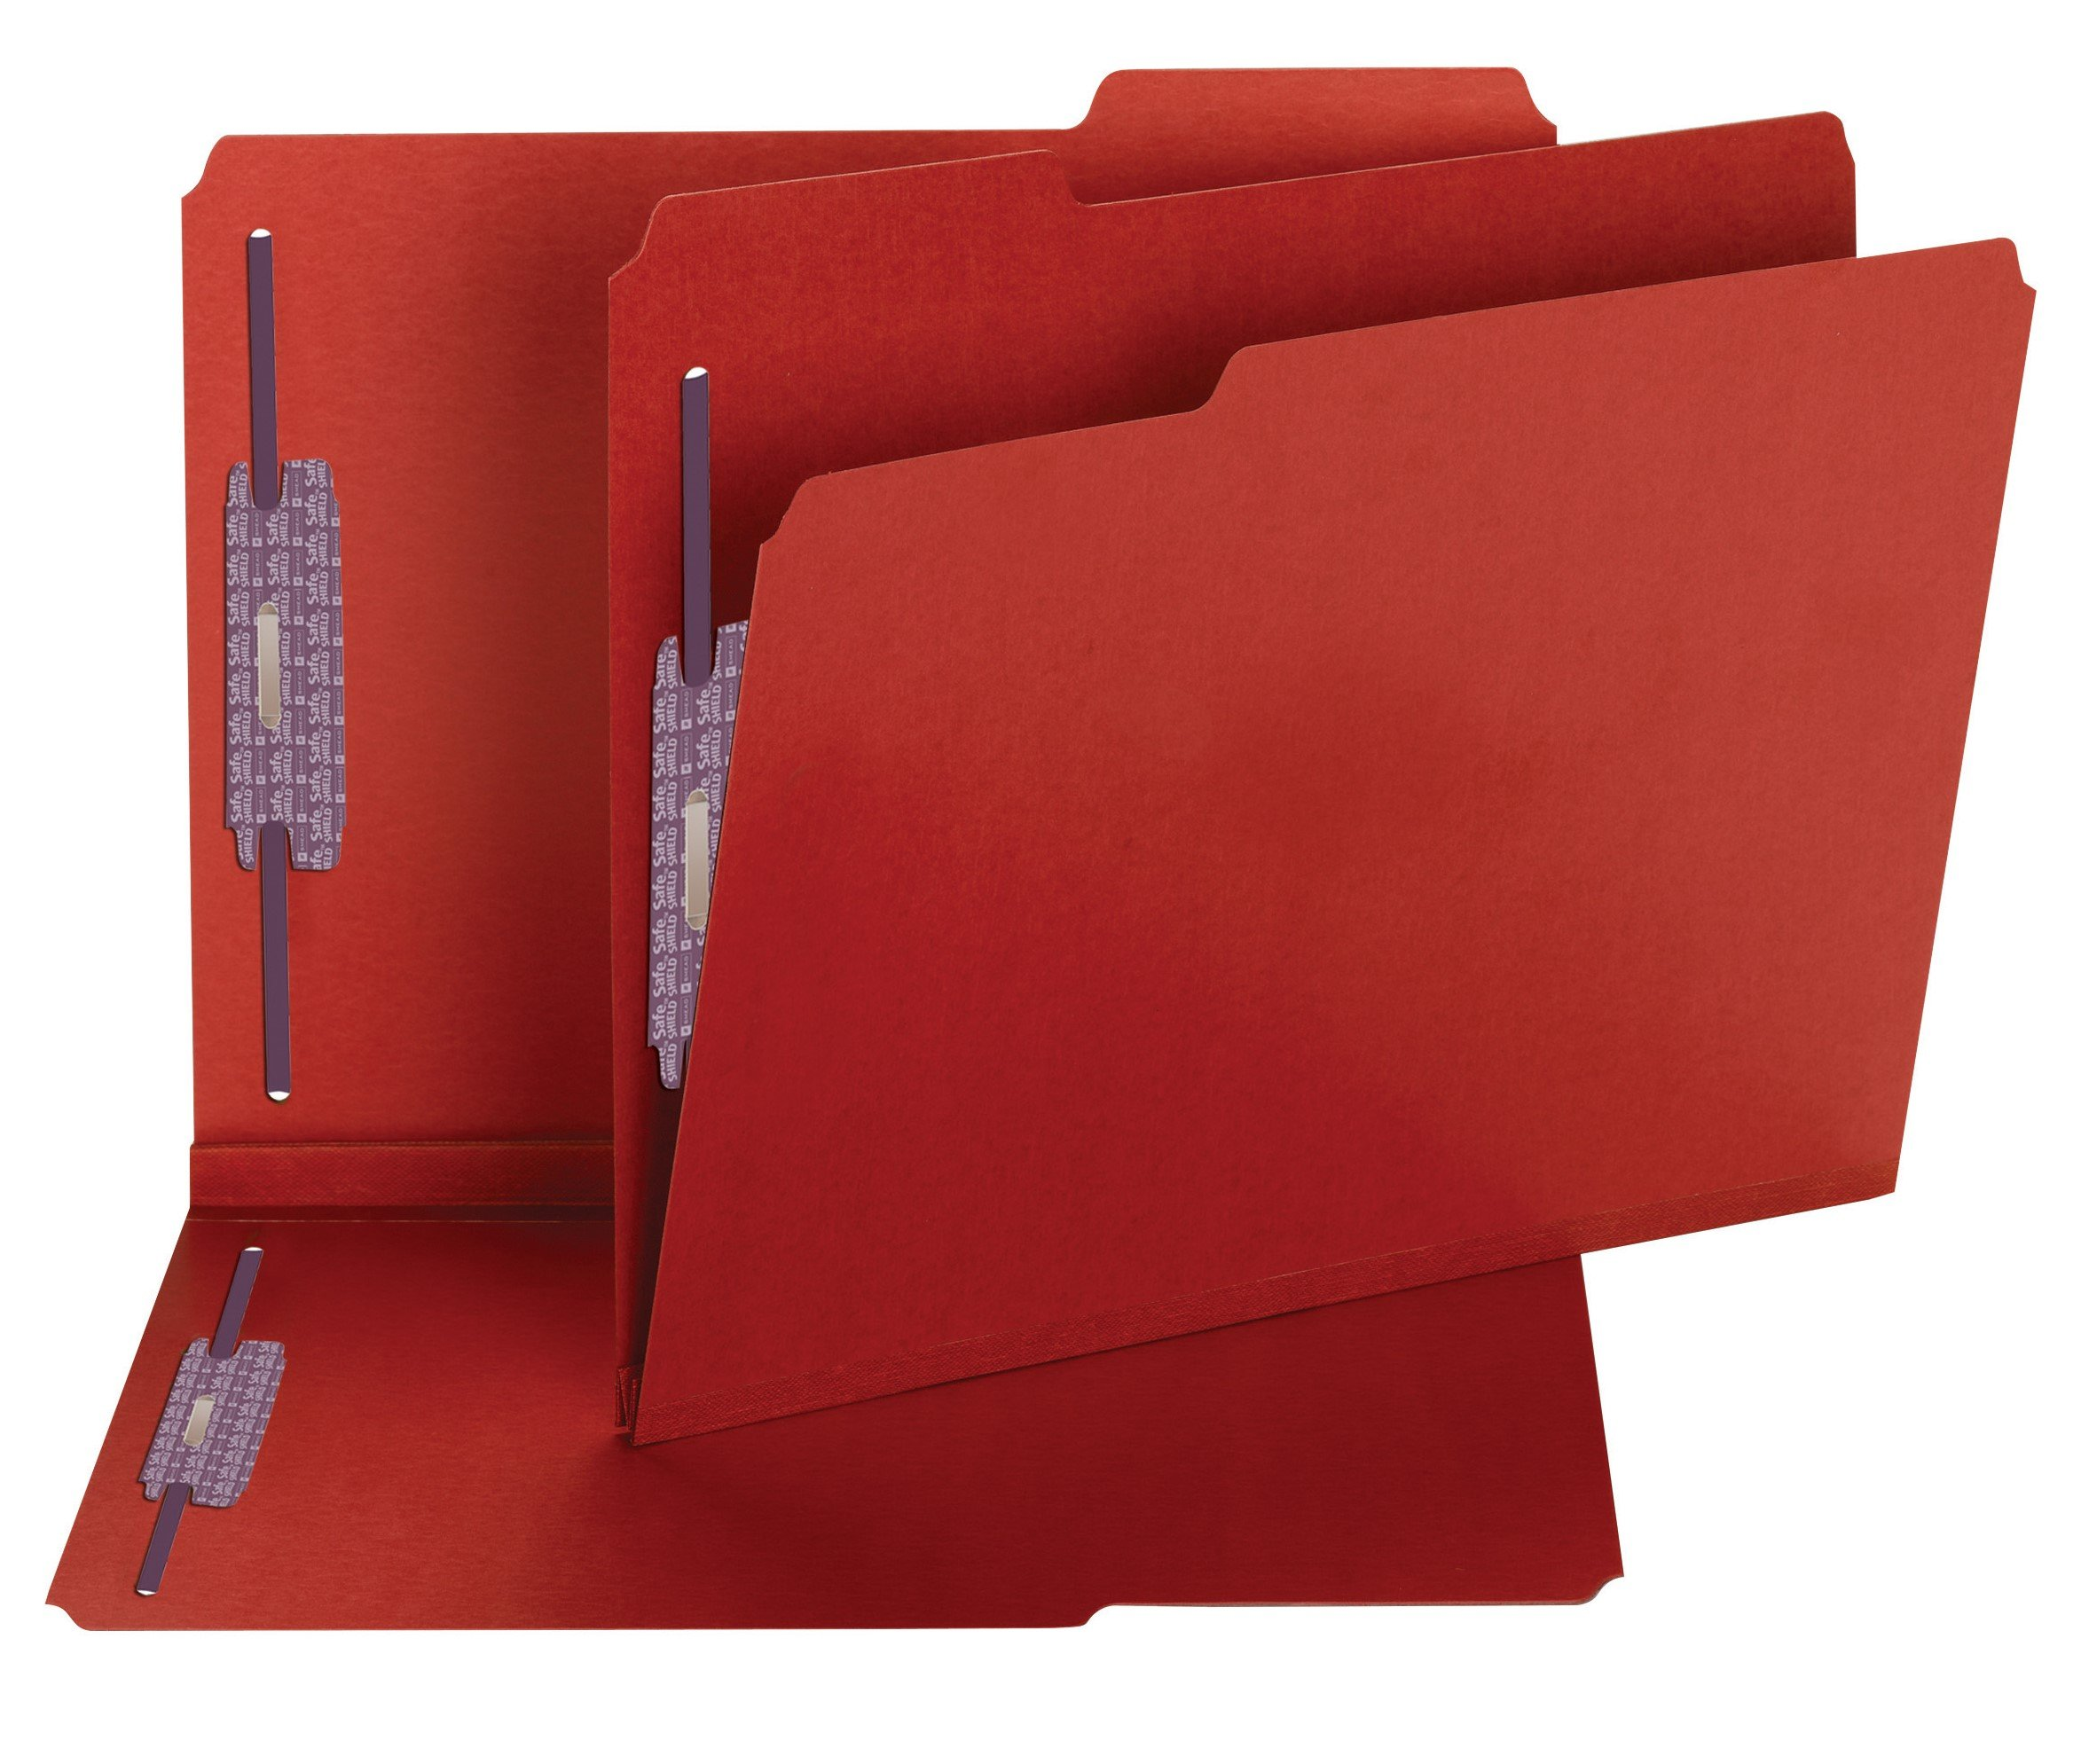 Smead Pressboard Fastener File Folder with SafeSHIELD Fasteners, 2 Fasteners, 1/3-Cut Tab, 2'' Expansion, Letter Size, Bright Red, 25 per Box  (14936)